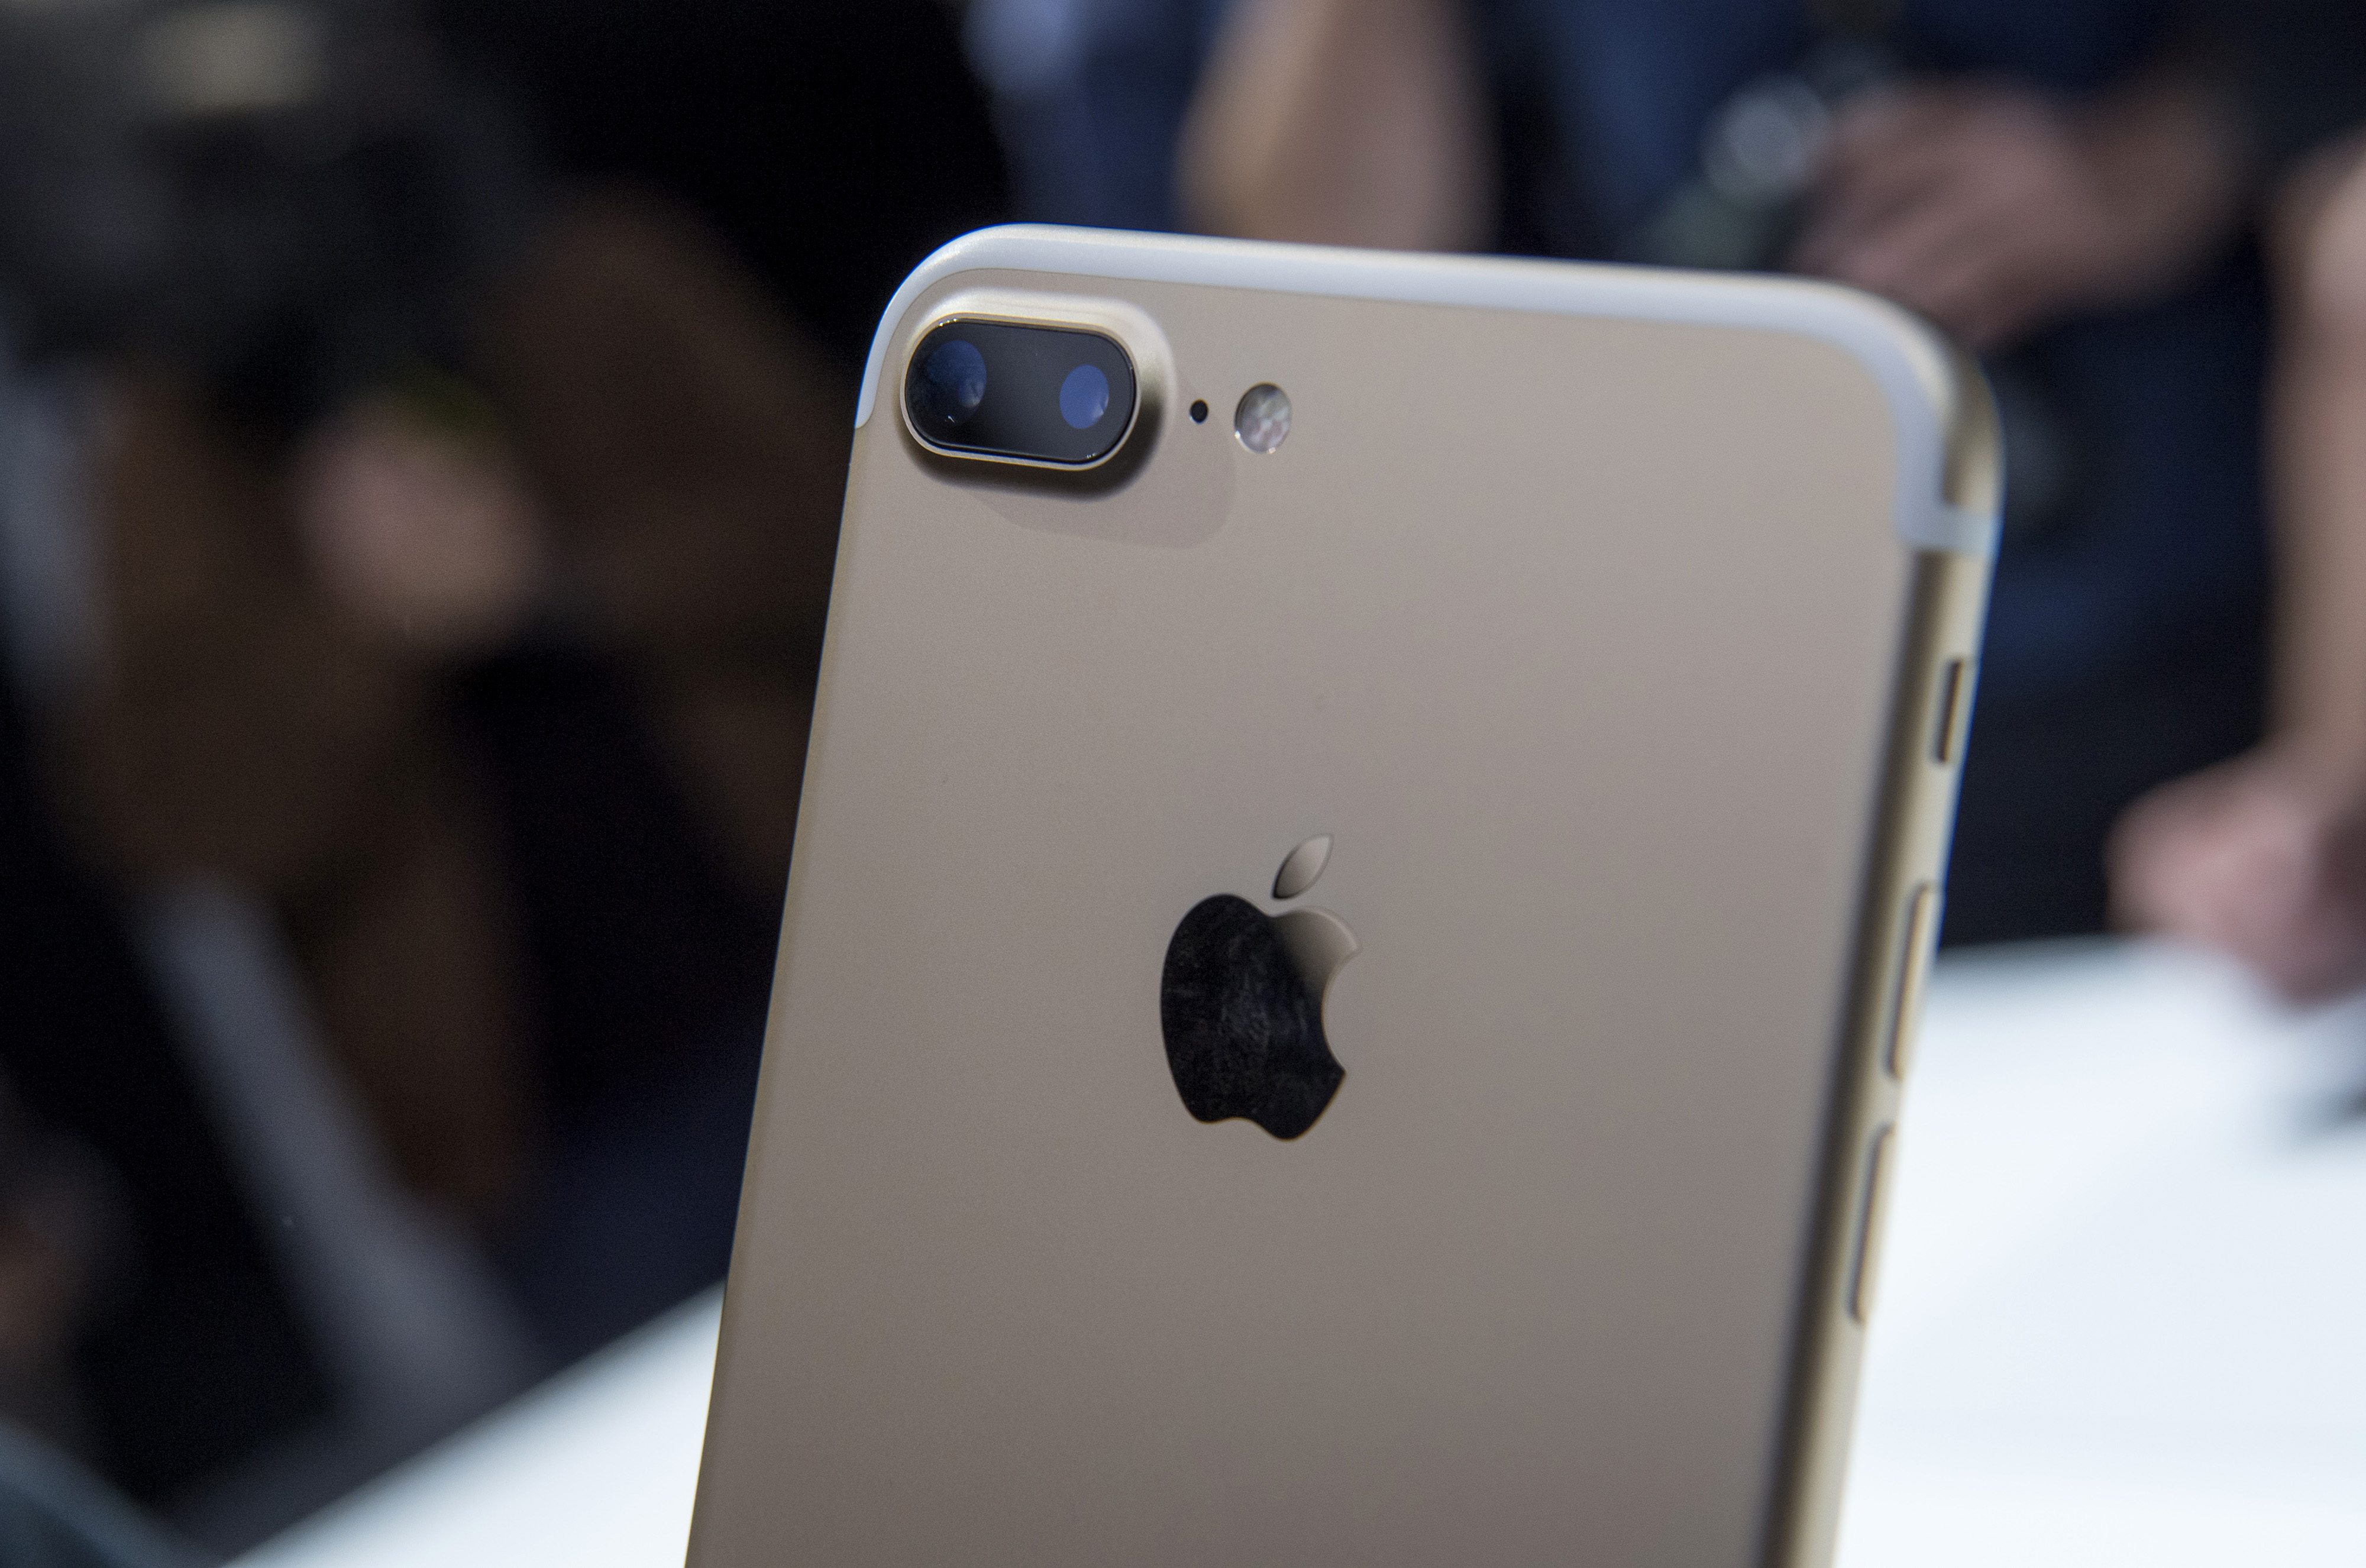 The dual cameras are seen on a Apple Inc., iPhone 7 Plus during an event in San Francisco, California, U.S., on Wednesday, Sept. 7, 2016.